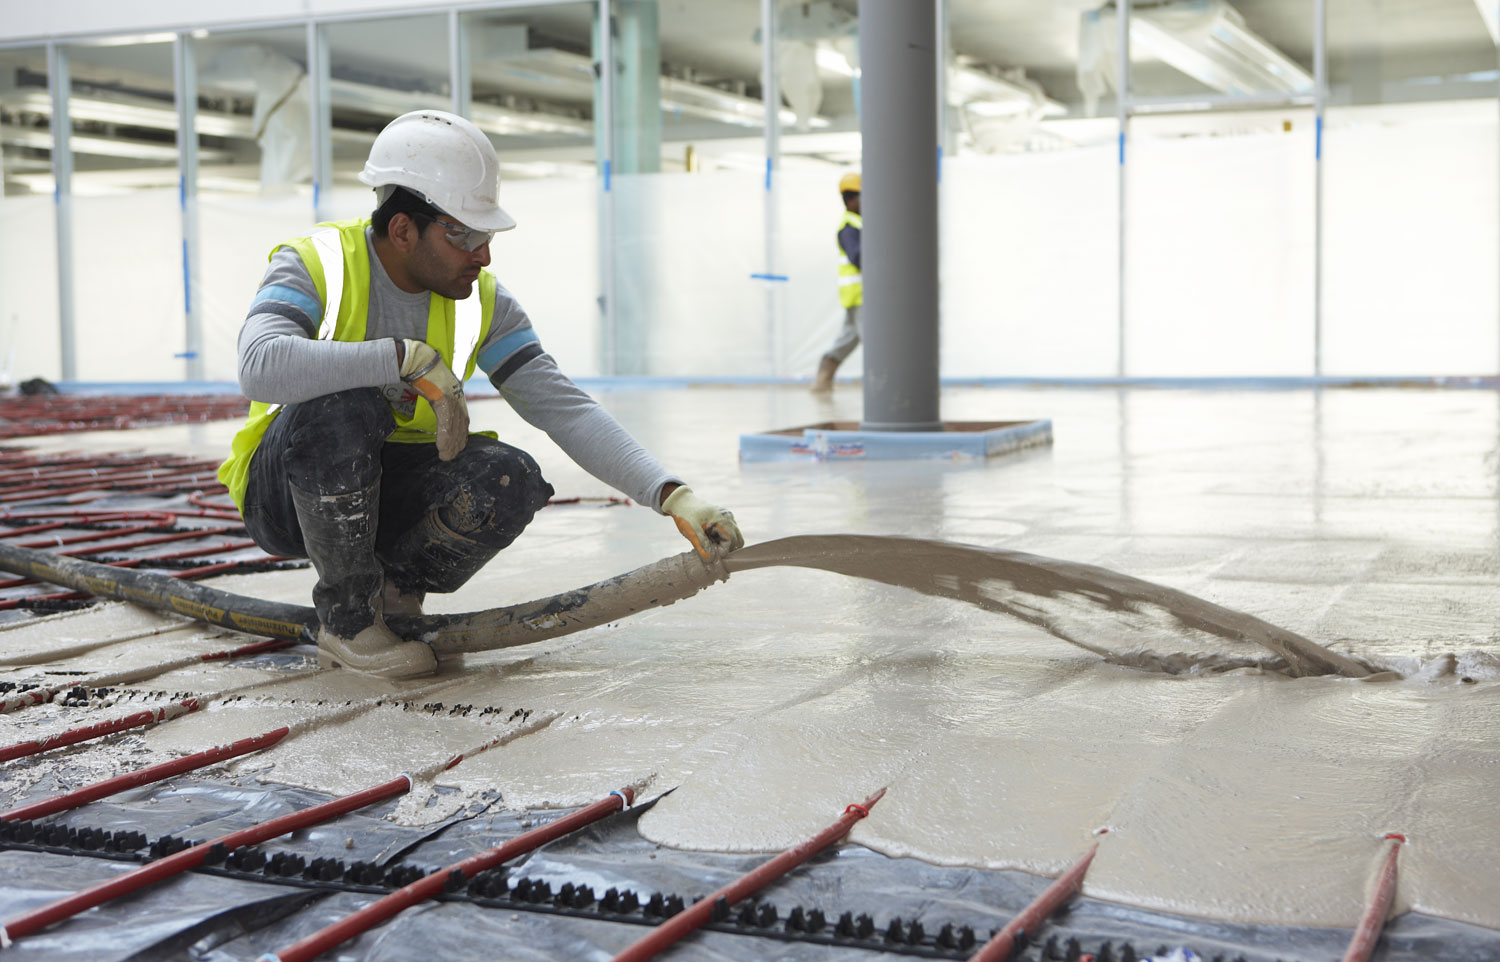 Atkins headquarters atrium underfloor heating system and pumped wet screed | Architectural Installation Photography